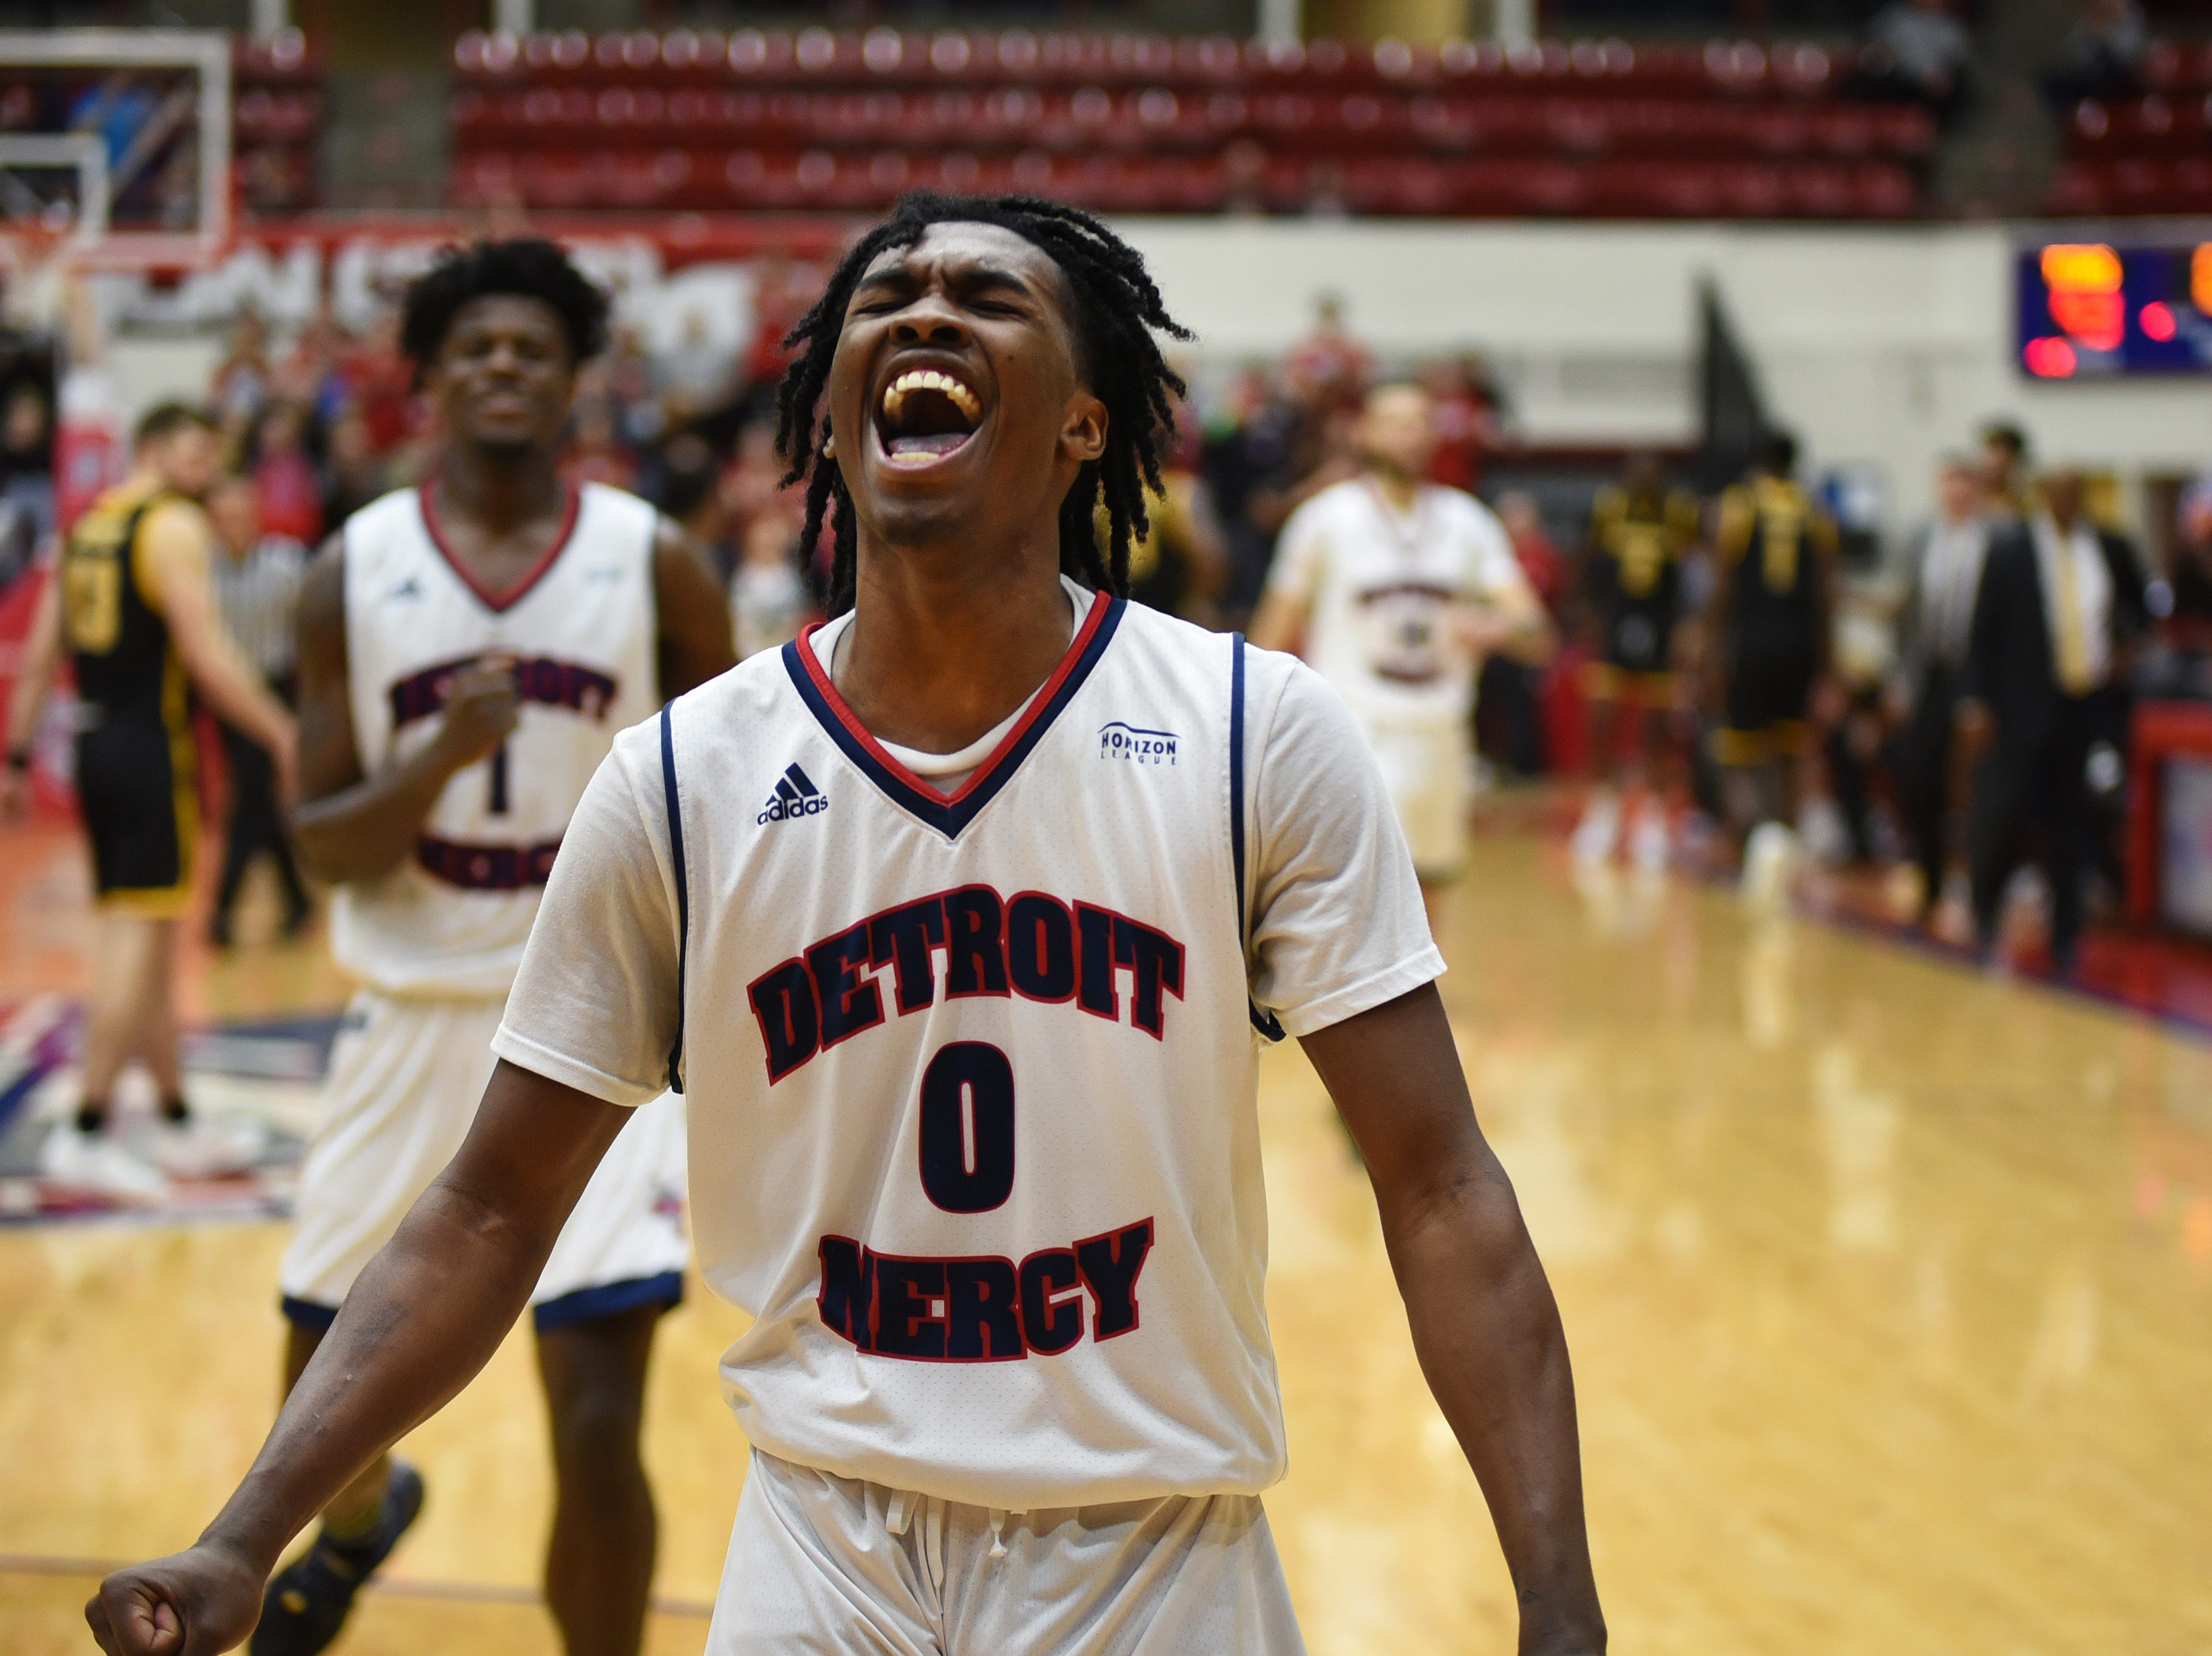 University of Detroit Mercy player Antoine Davis reacts after scoring 32 points to lead the Titans to victory over Milwaukee 93-84 at Calihan Hall in Detroit on Saturday, January 12, 2019. The freshman son of coach Mike Davis is averaging almost 28 points per game.